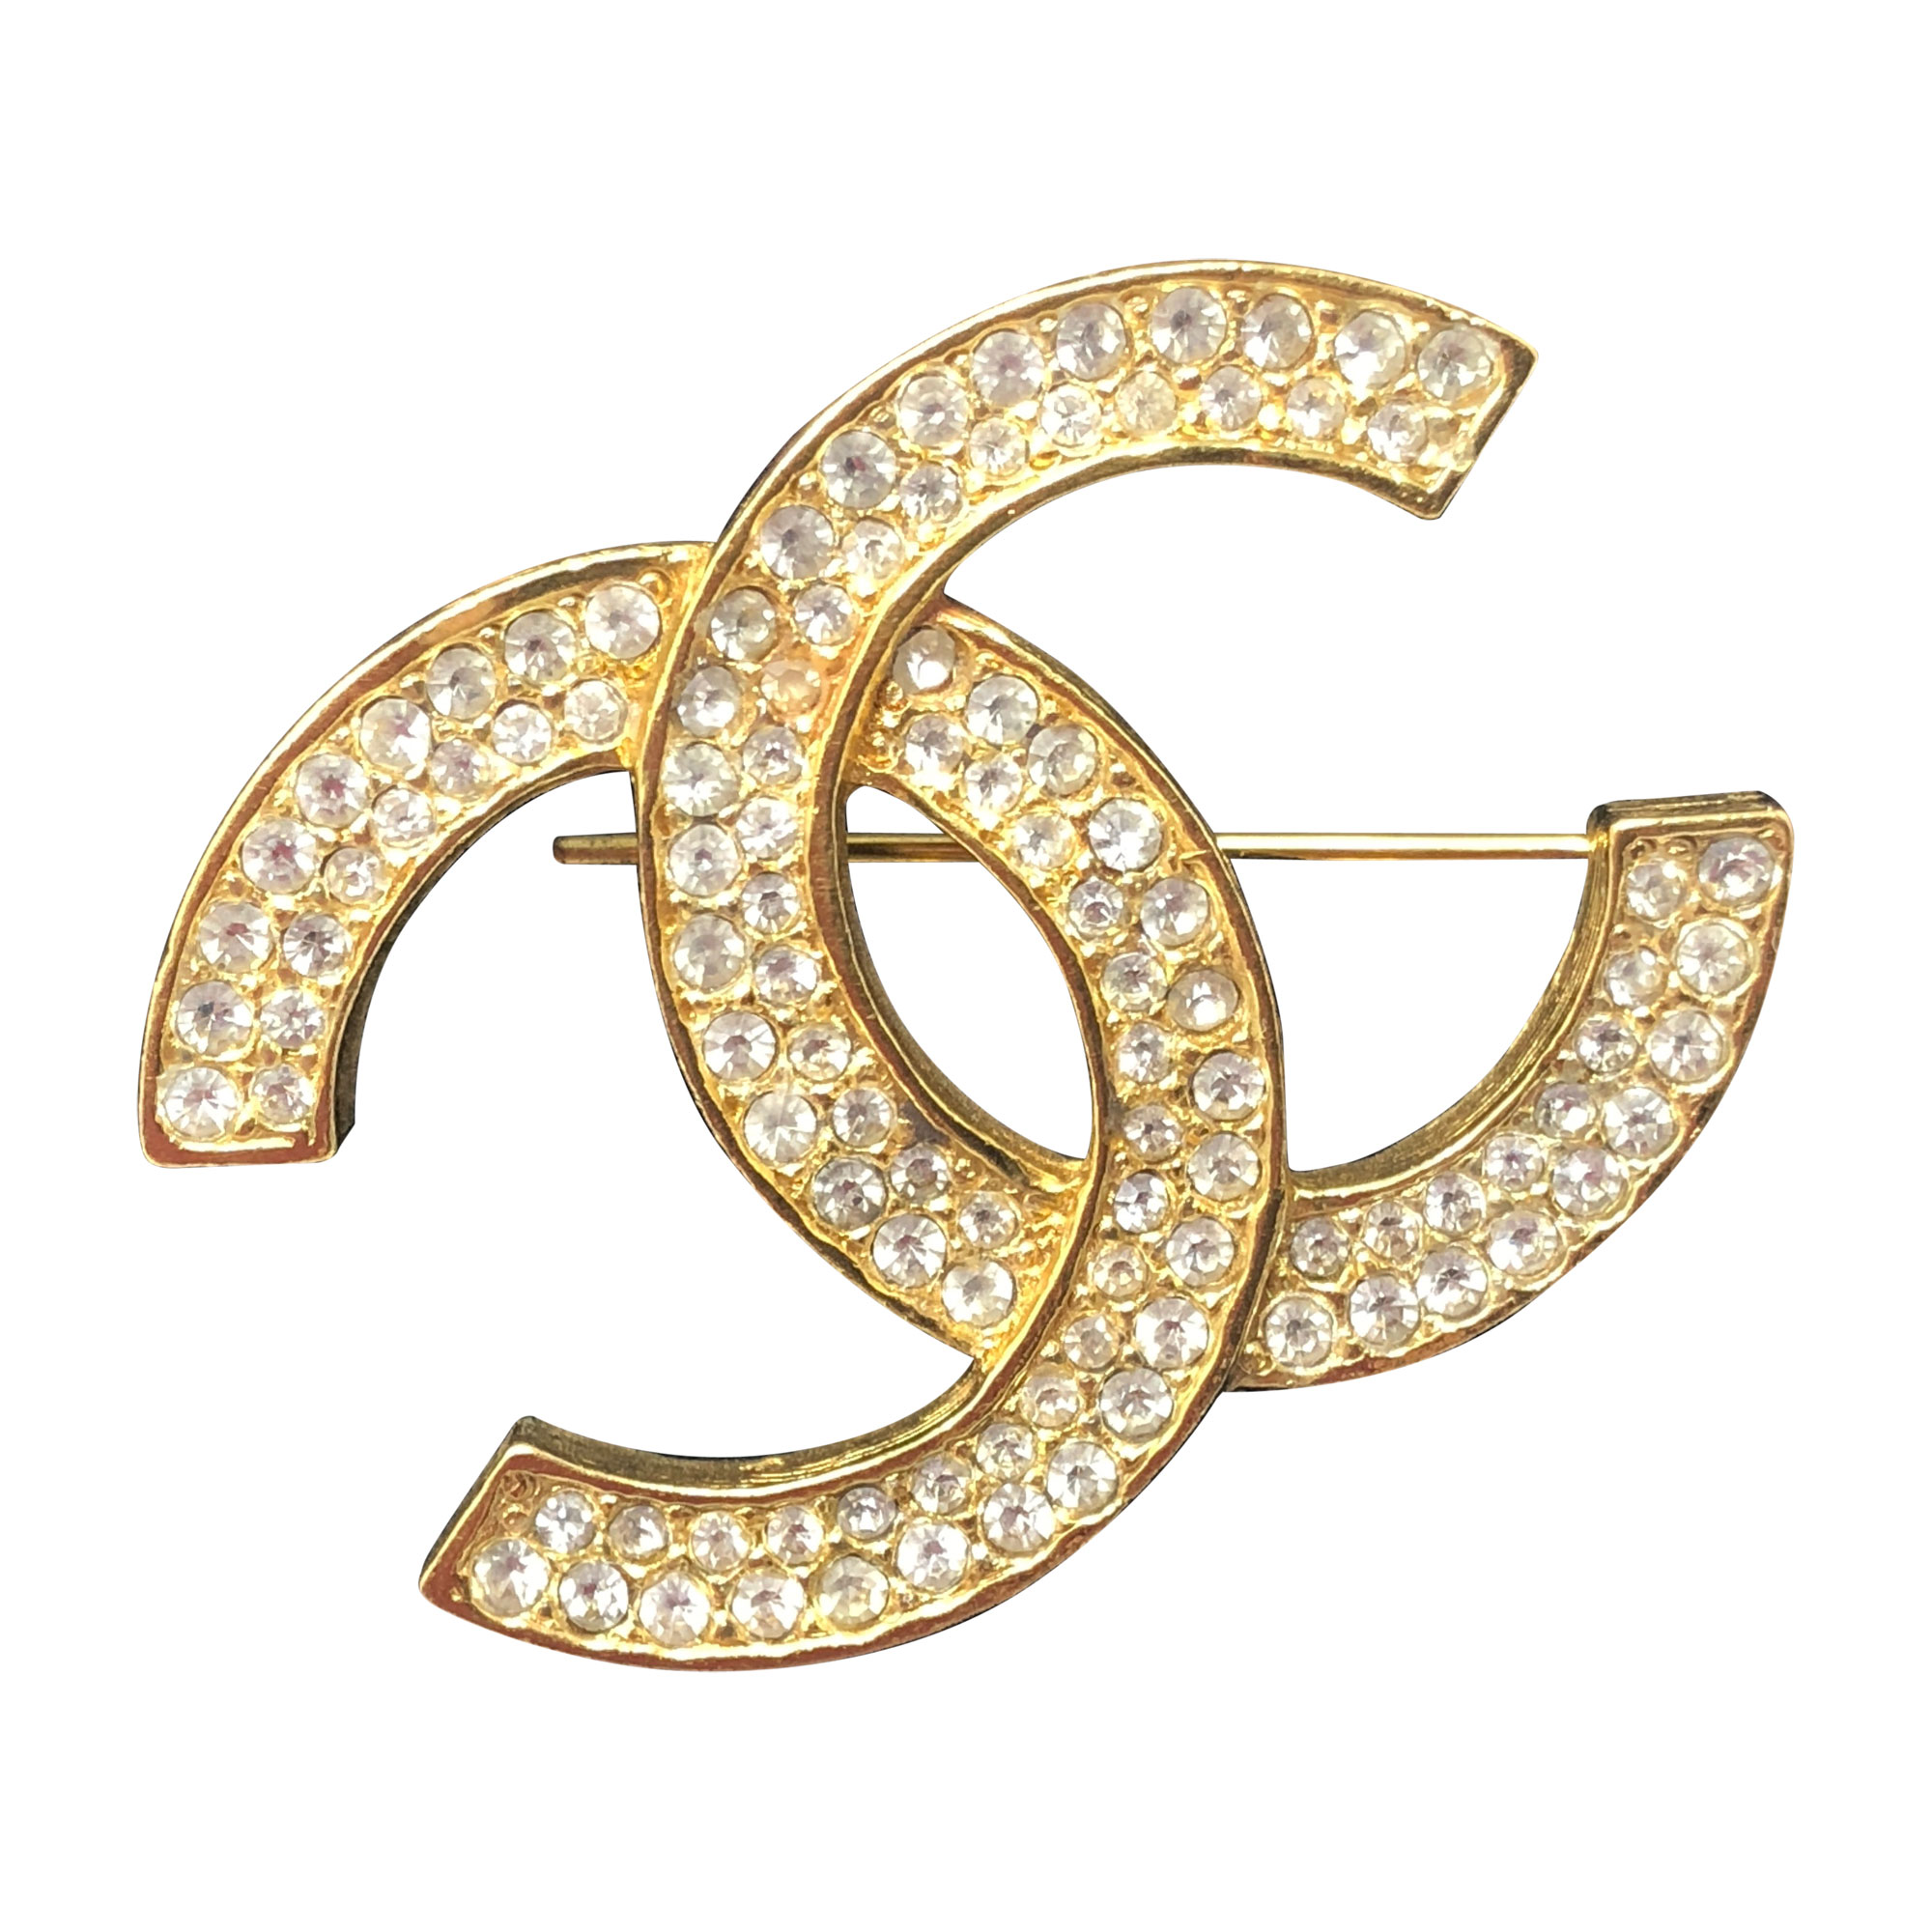 f14c0571319 Broche CHANEL j12 doré - 7694572